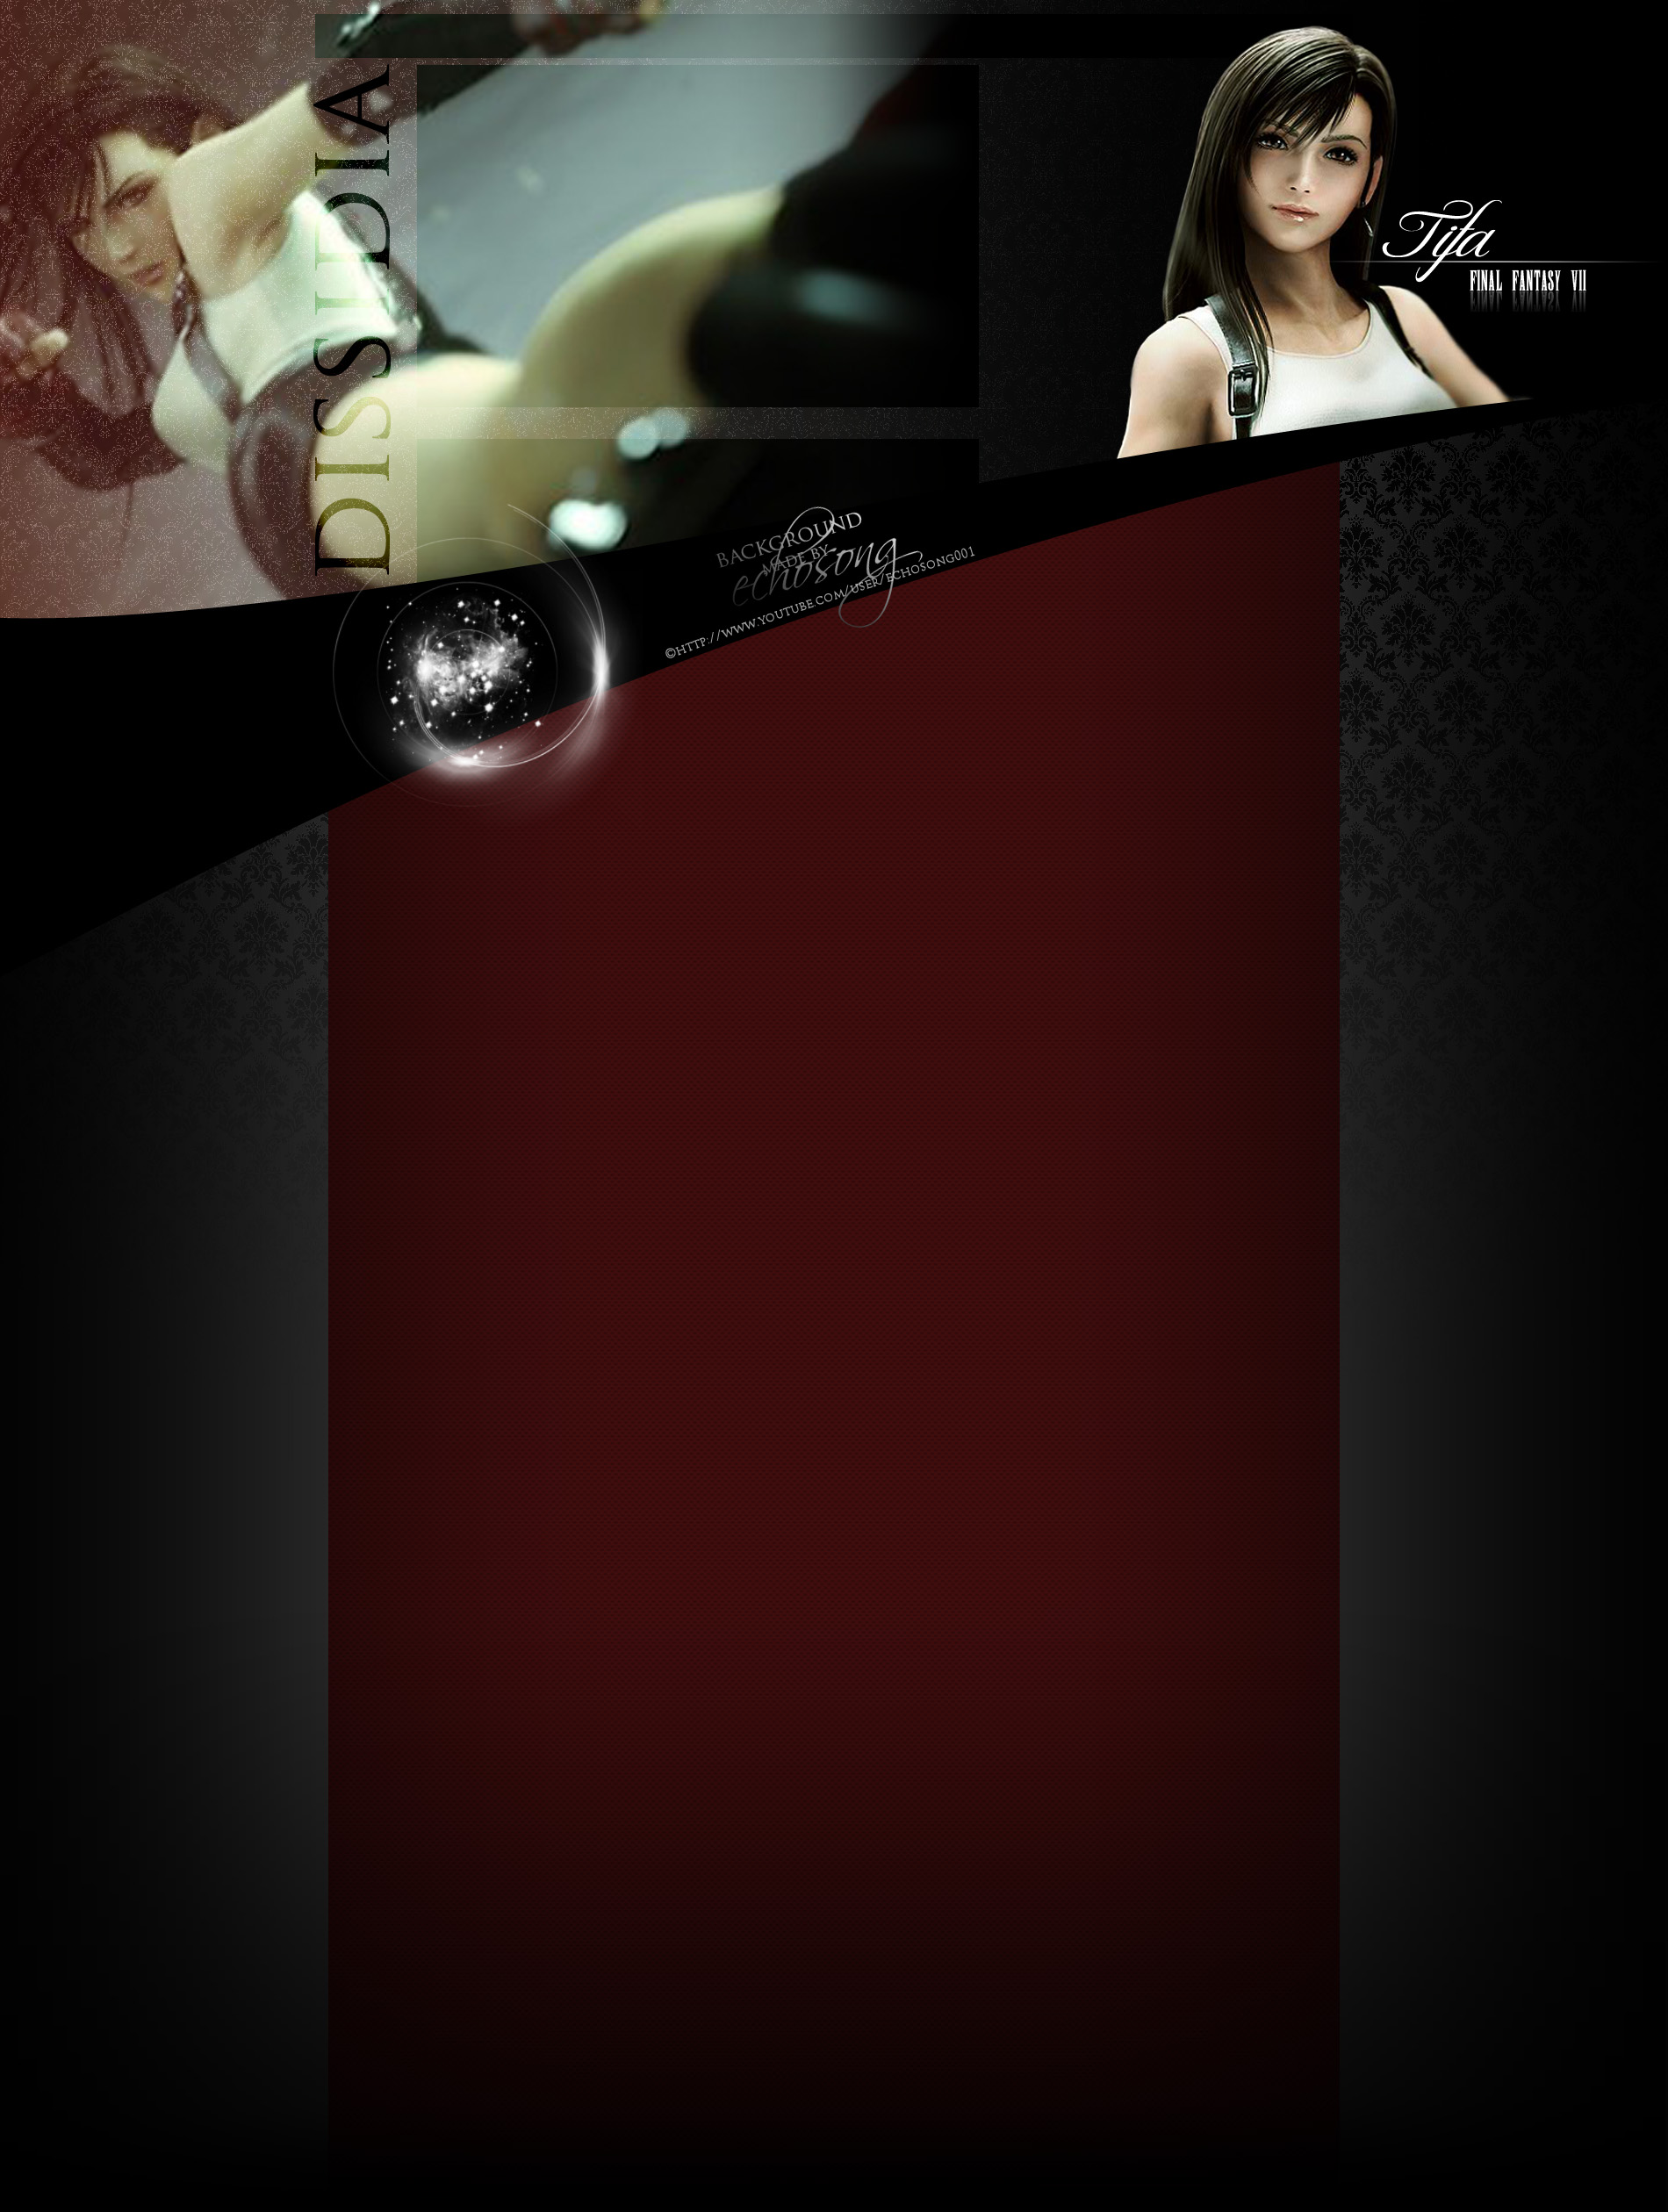 D012 Tifa Youtube Background by echosong001